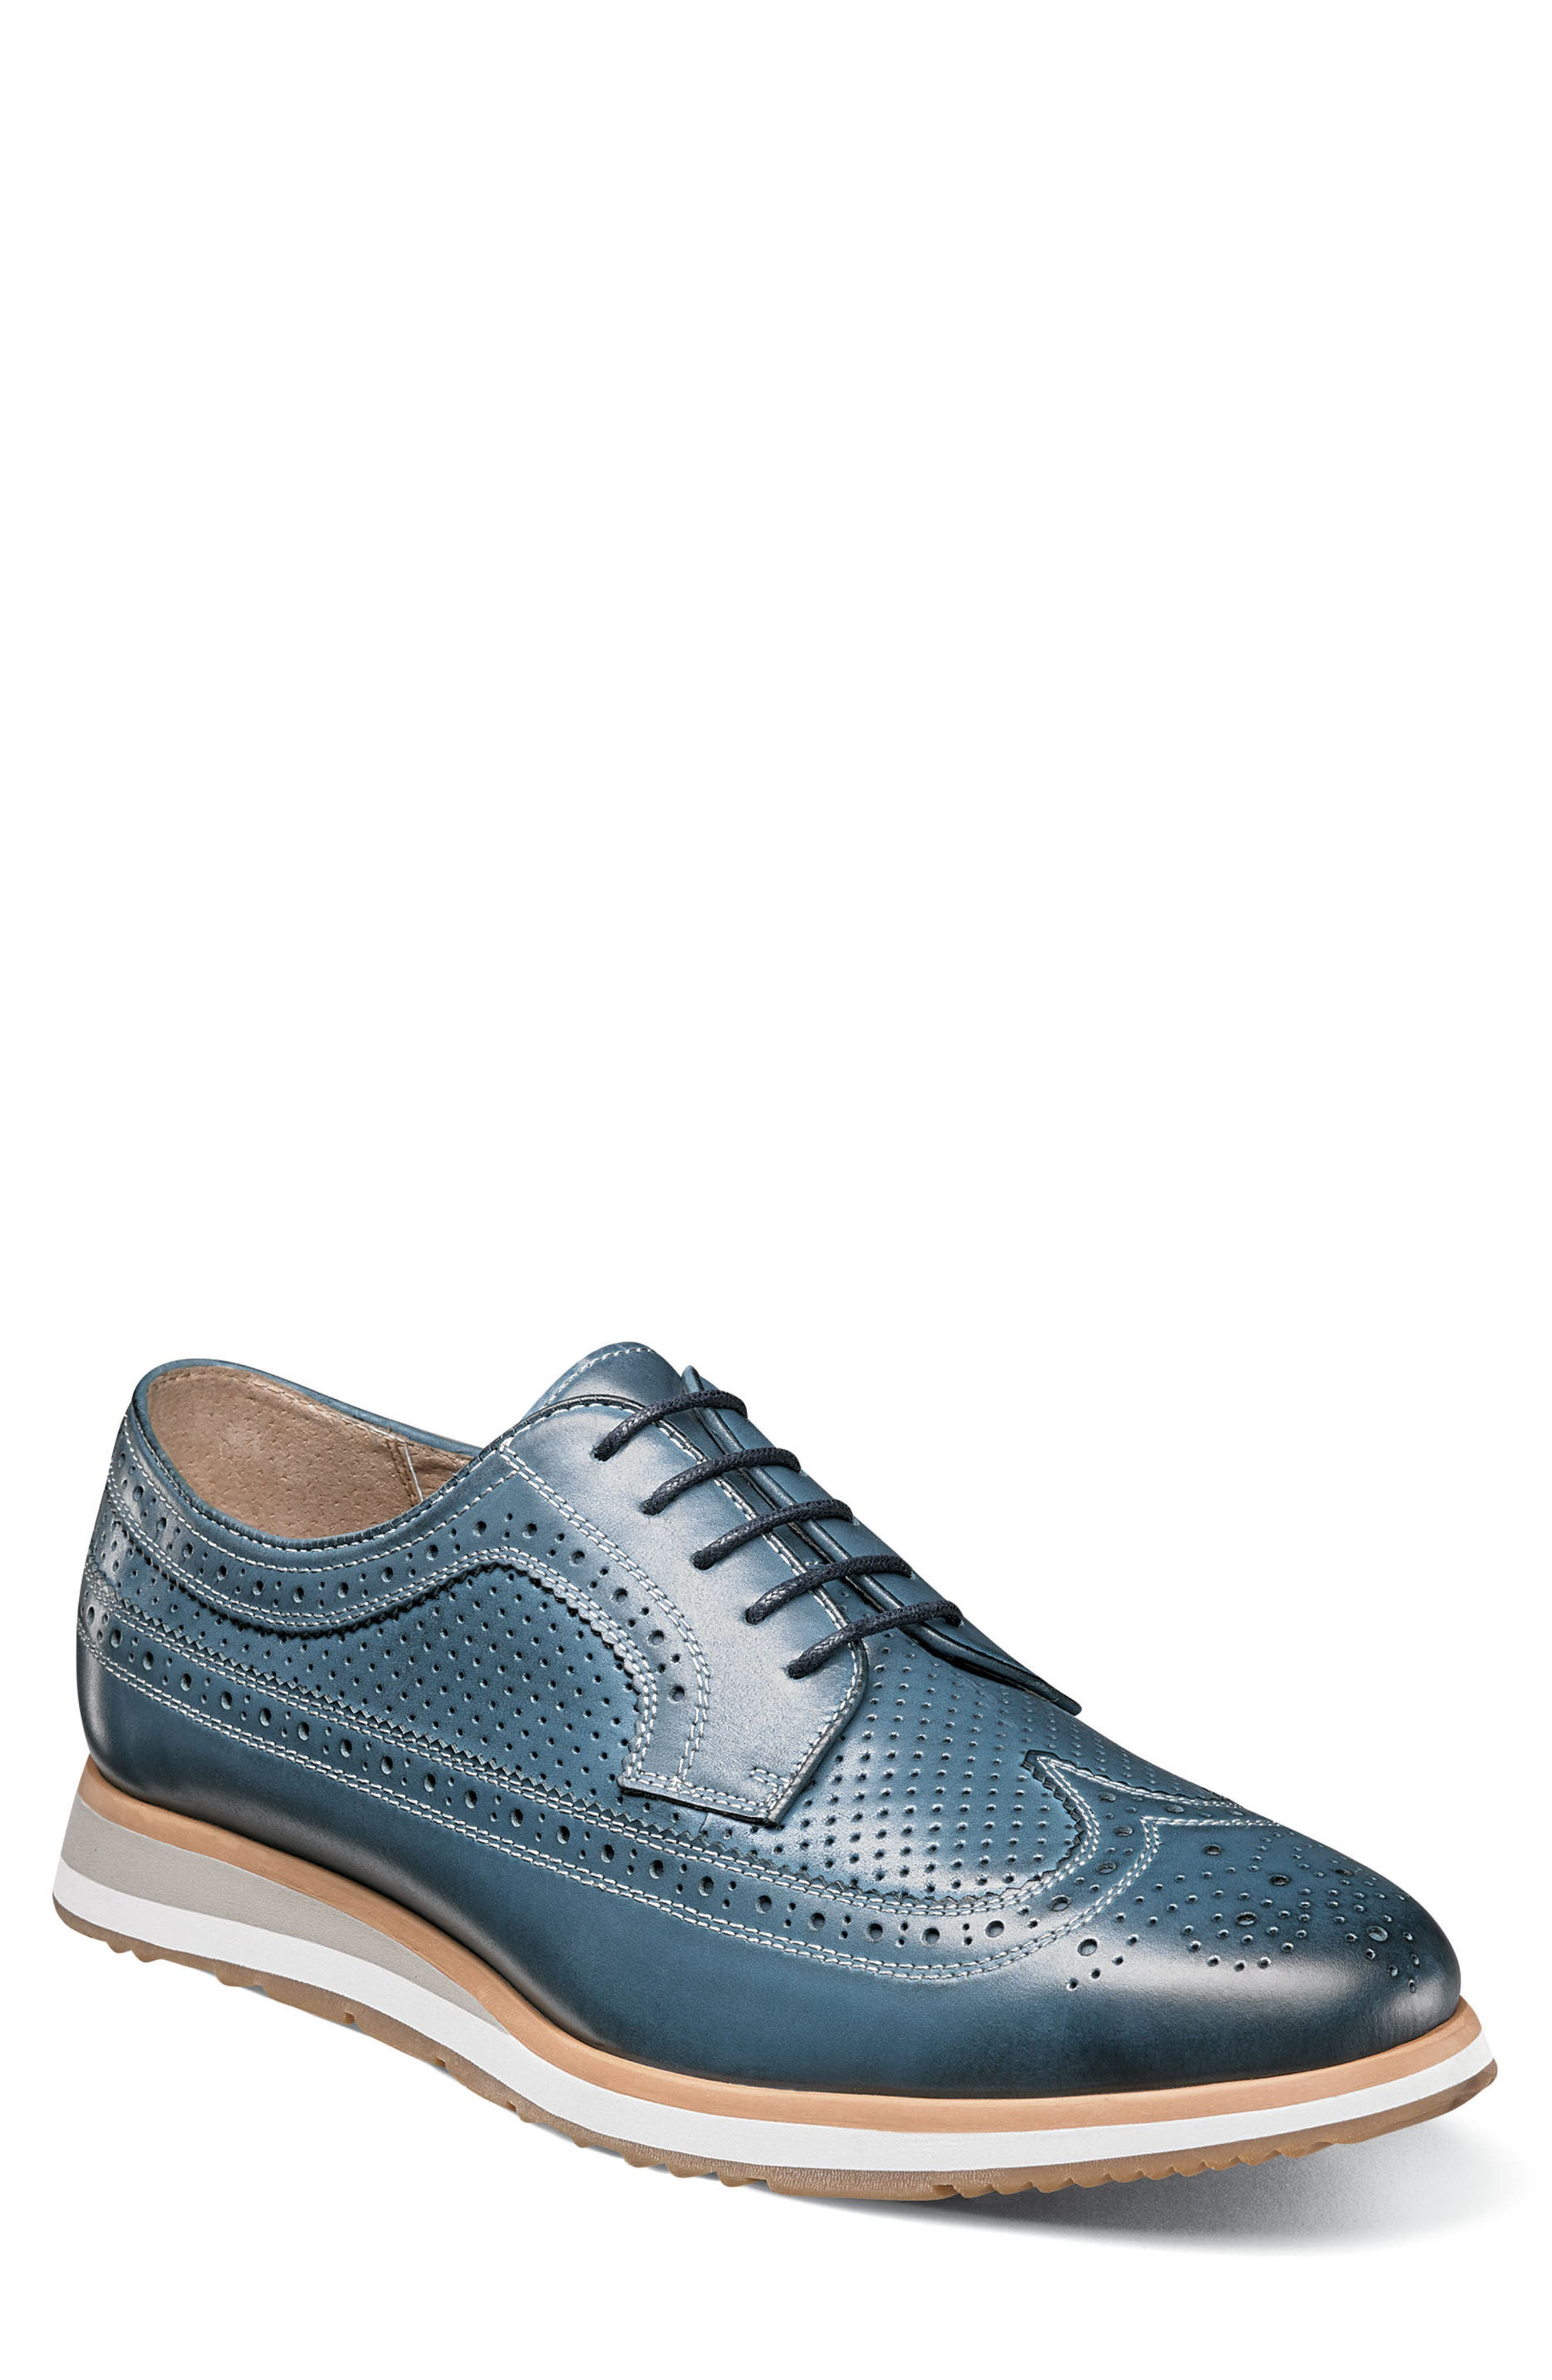 Limited Flux Perforated Wingtip Derby,                             Main thumbnail 1, color,                             Indigo Leather